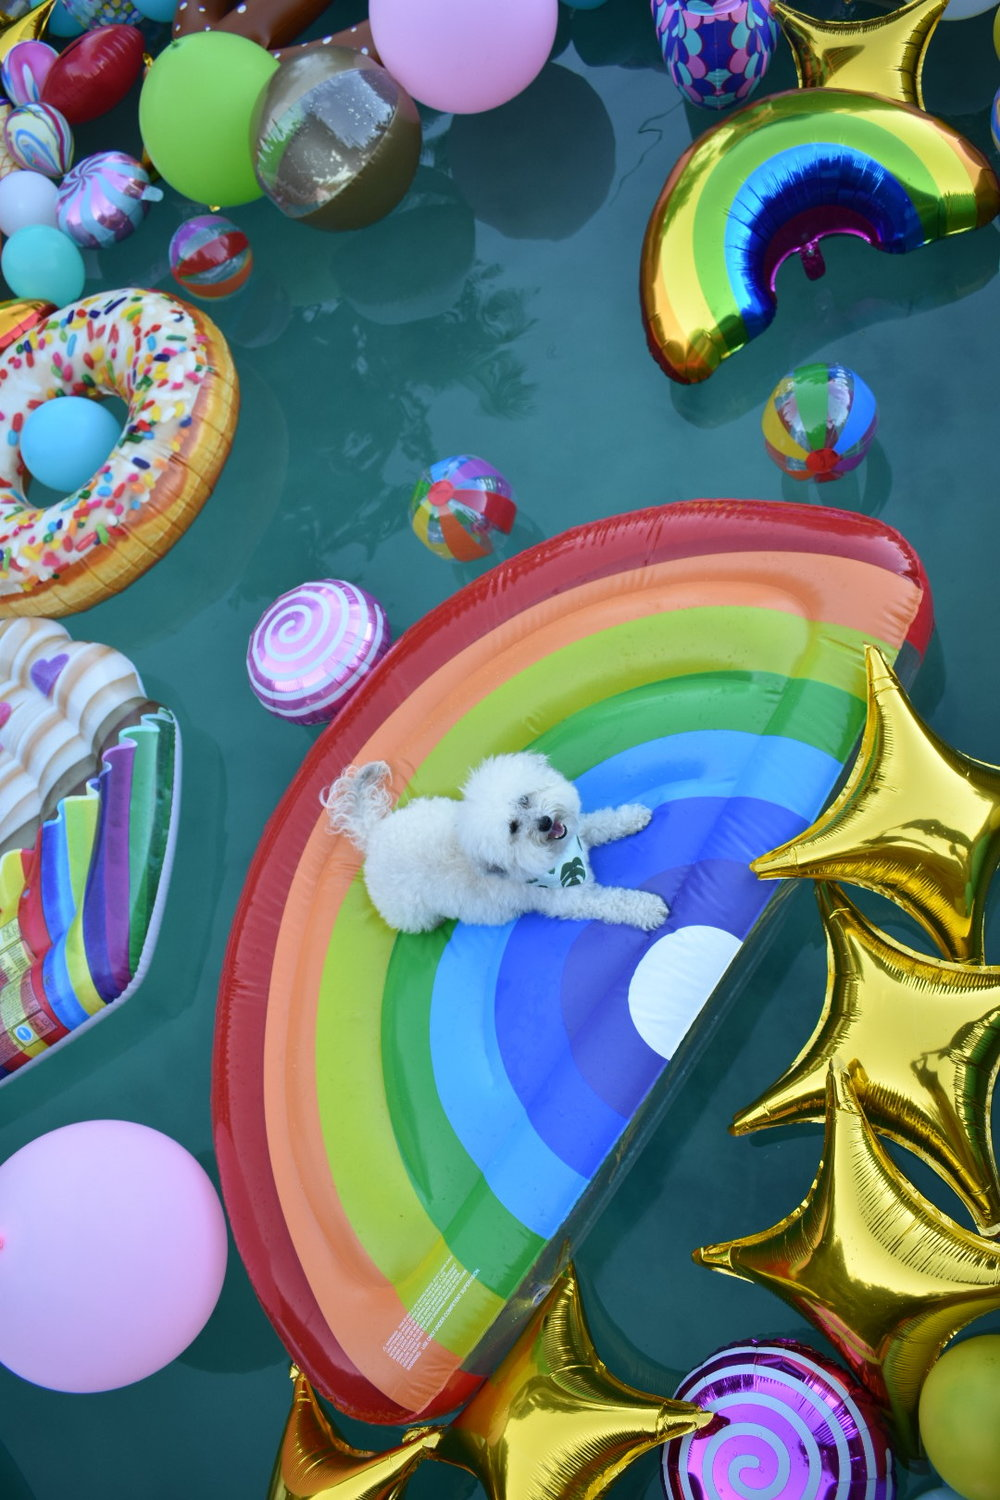 Watson on a rainbow float in the pool in Palm Springs, California | Watson & Walls